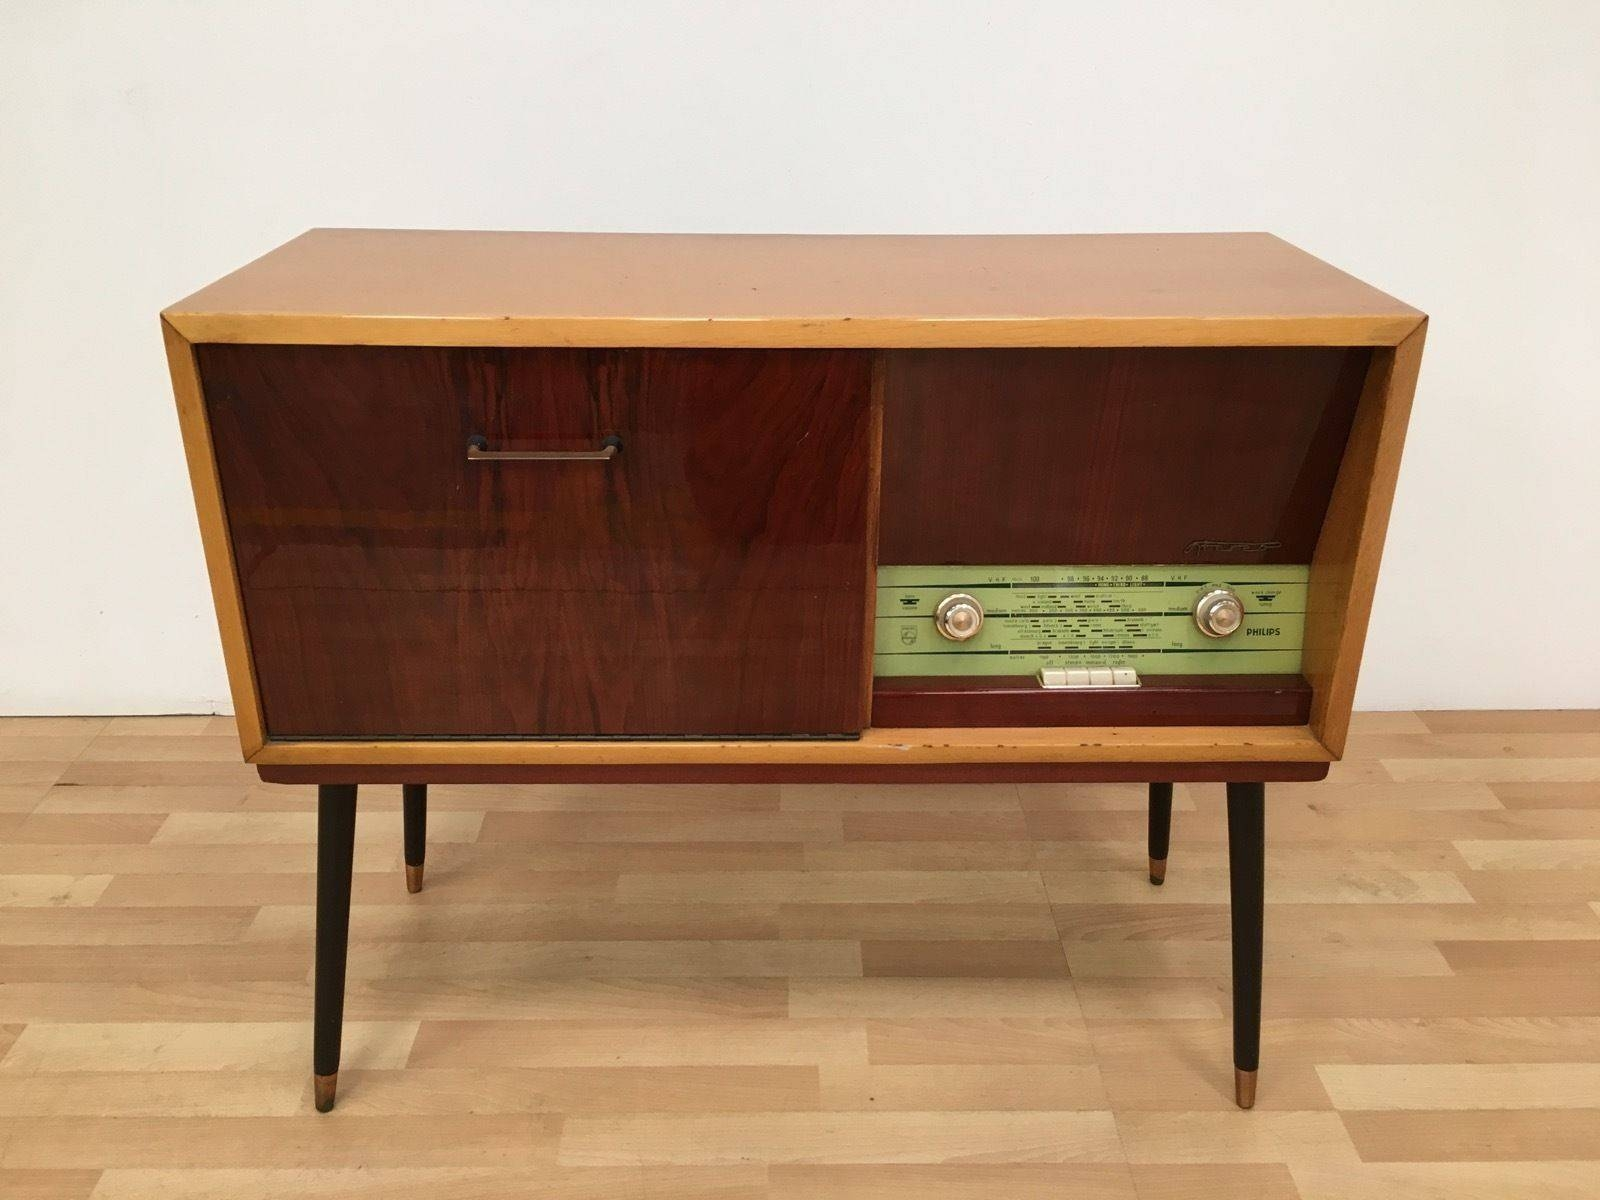 Vintage Retro Mid Century 50s 60s Philips Stereo Radiogram In Latest 50s Sideboards (View 3 of 15)